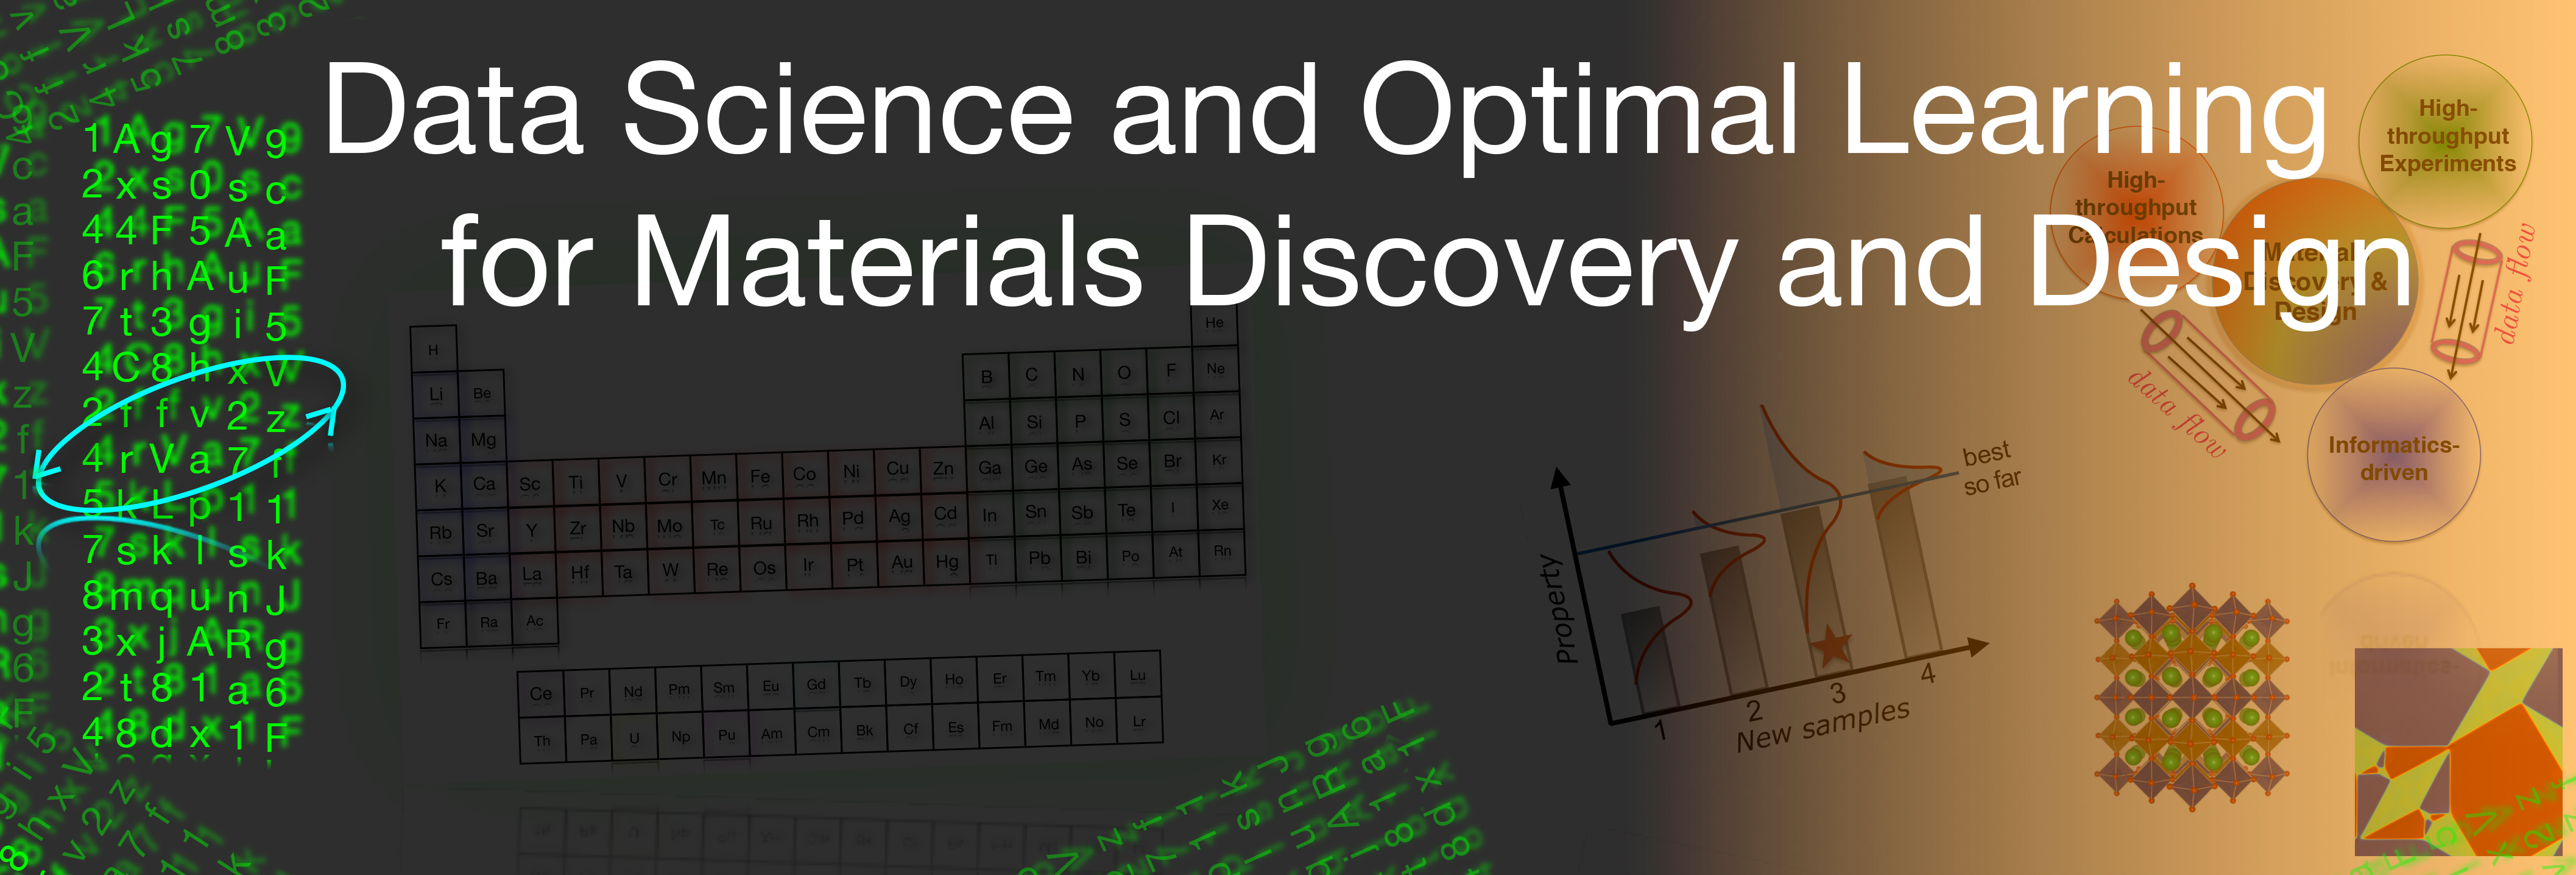 Data Science and Optimal Learning for Material Discovery and Design